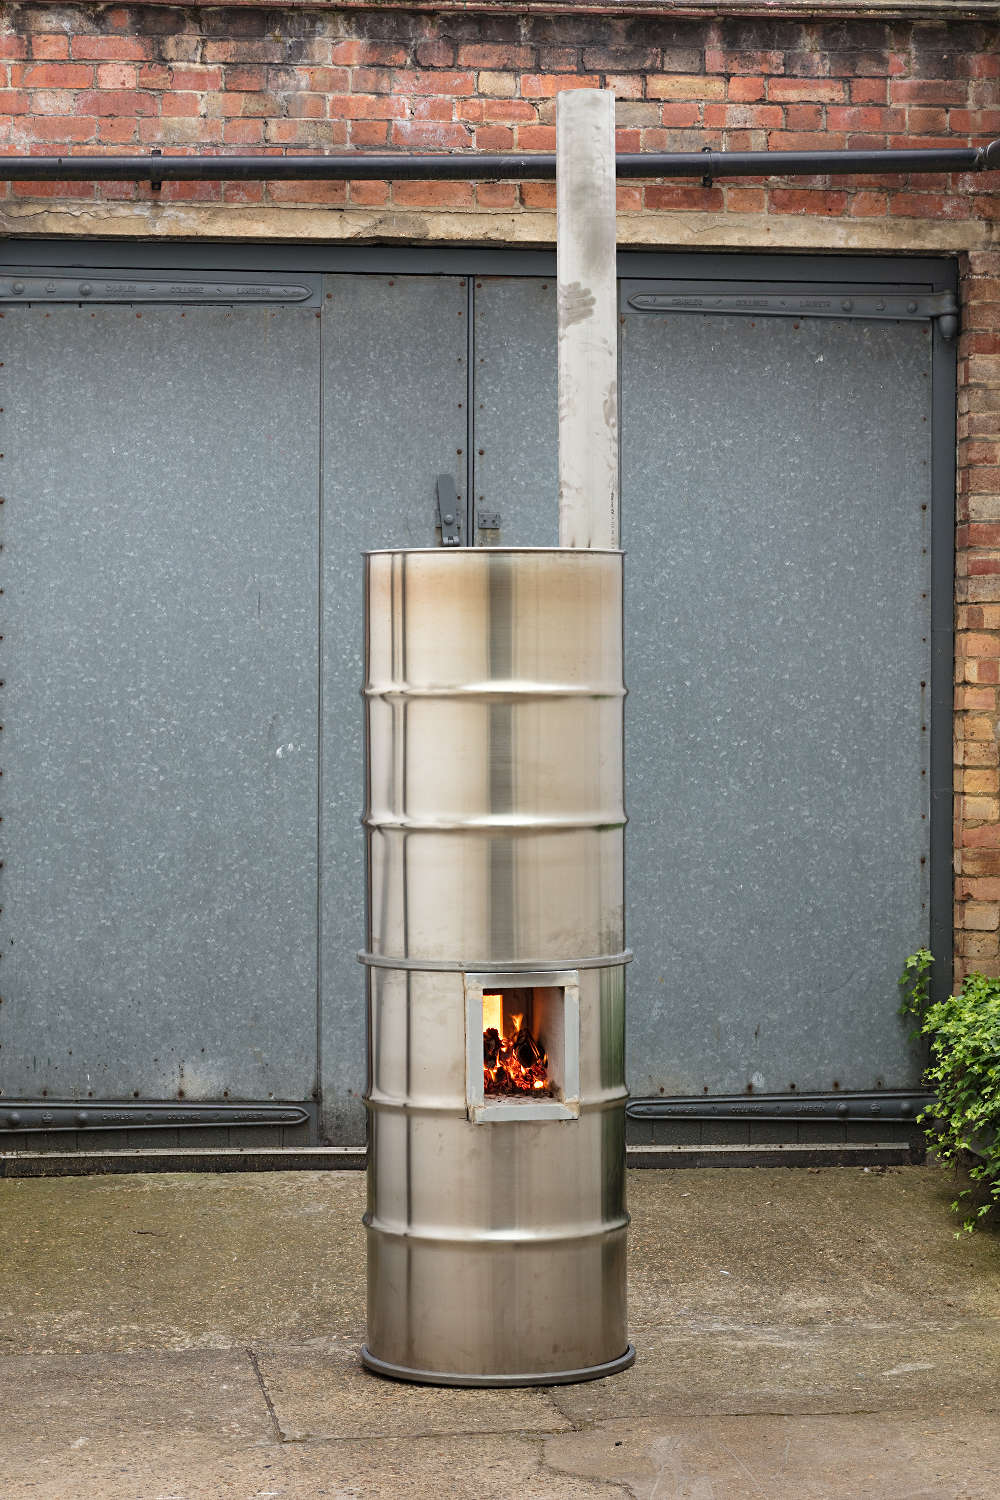 Oscar Tuazon, (FIRE) for Winona La Duke [Peter van den Berg, Antoine Rocca], 2018. Stainless steel, refractory brick, wood, fire 250 x 60 x 60 cm © Oscar Tuazon, courtesy Maureen Paley, London